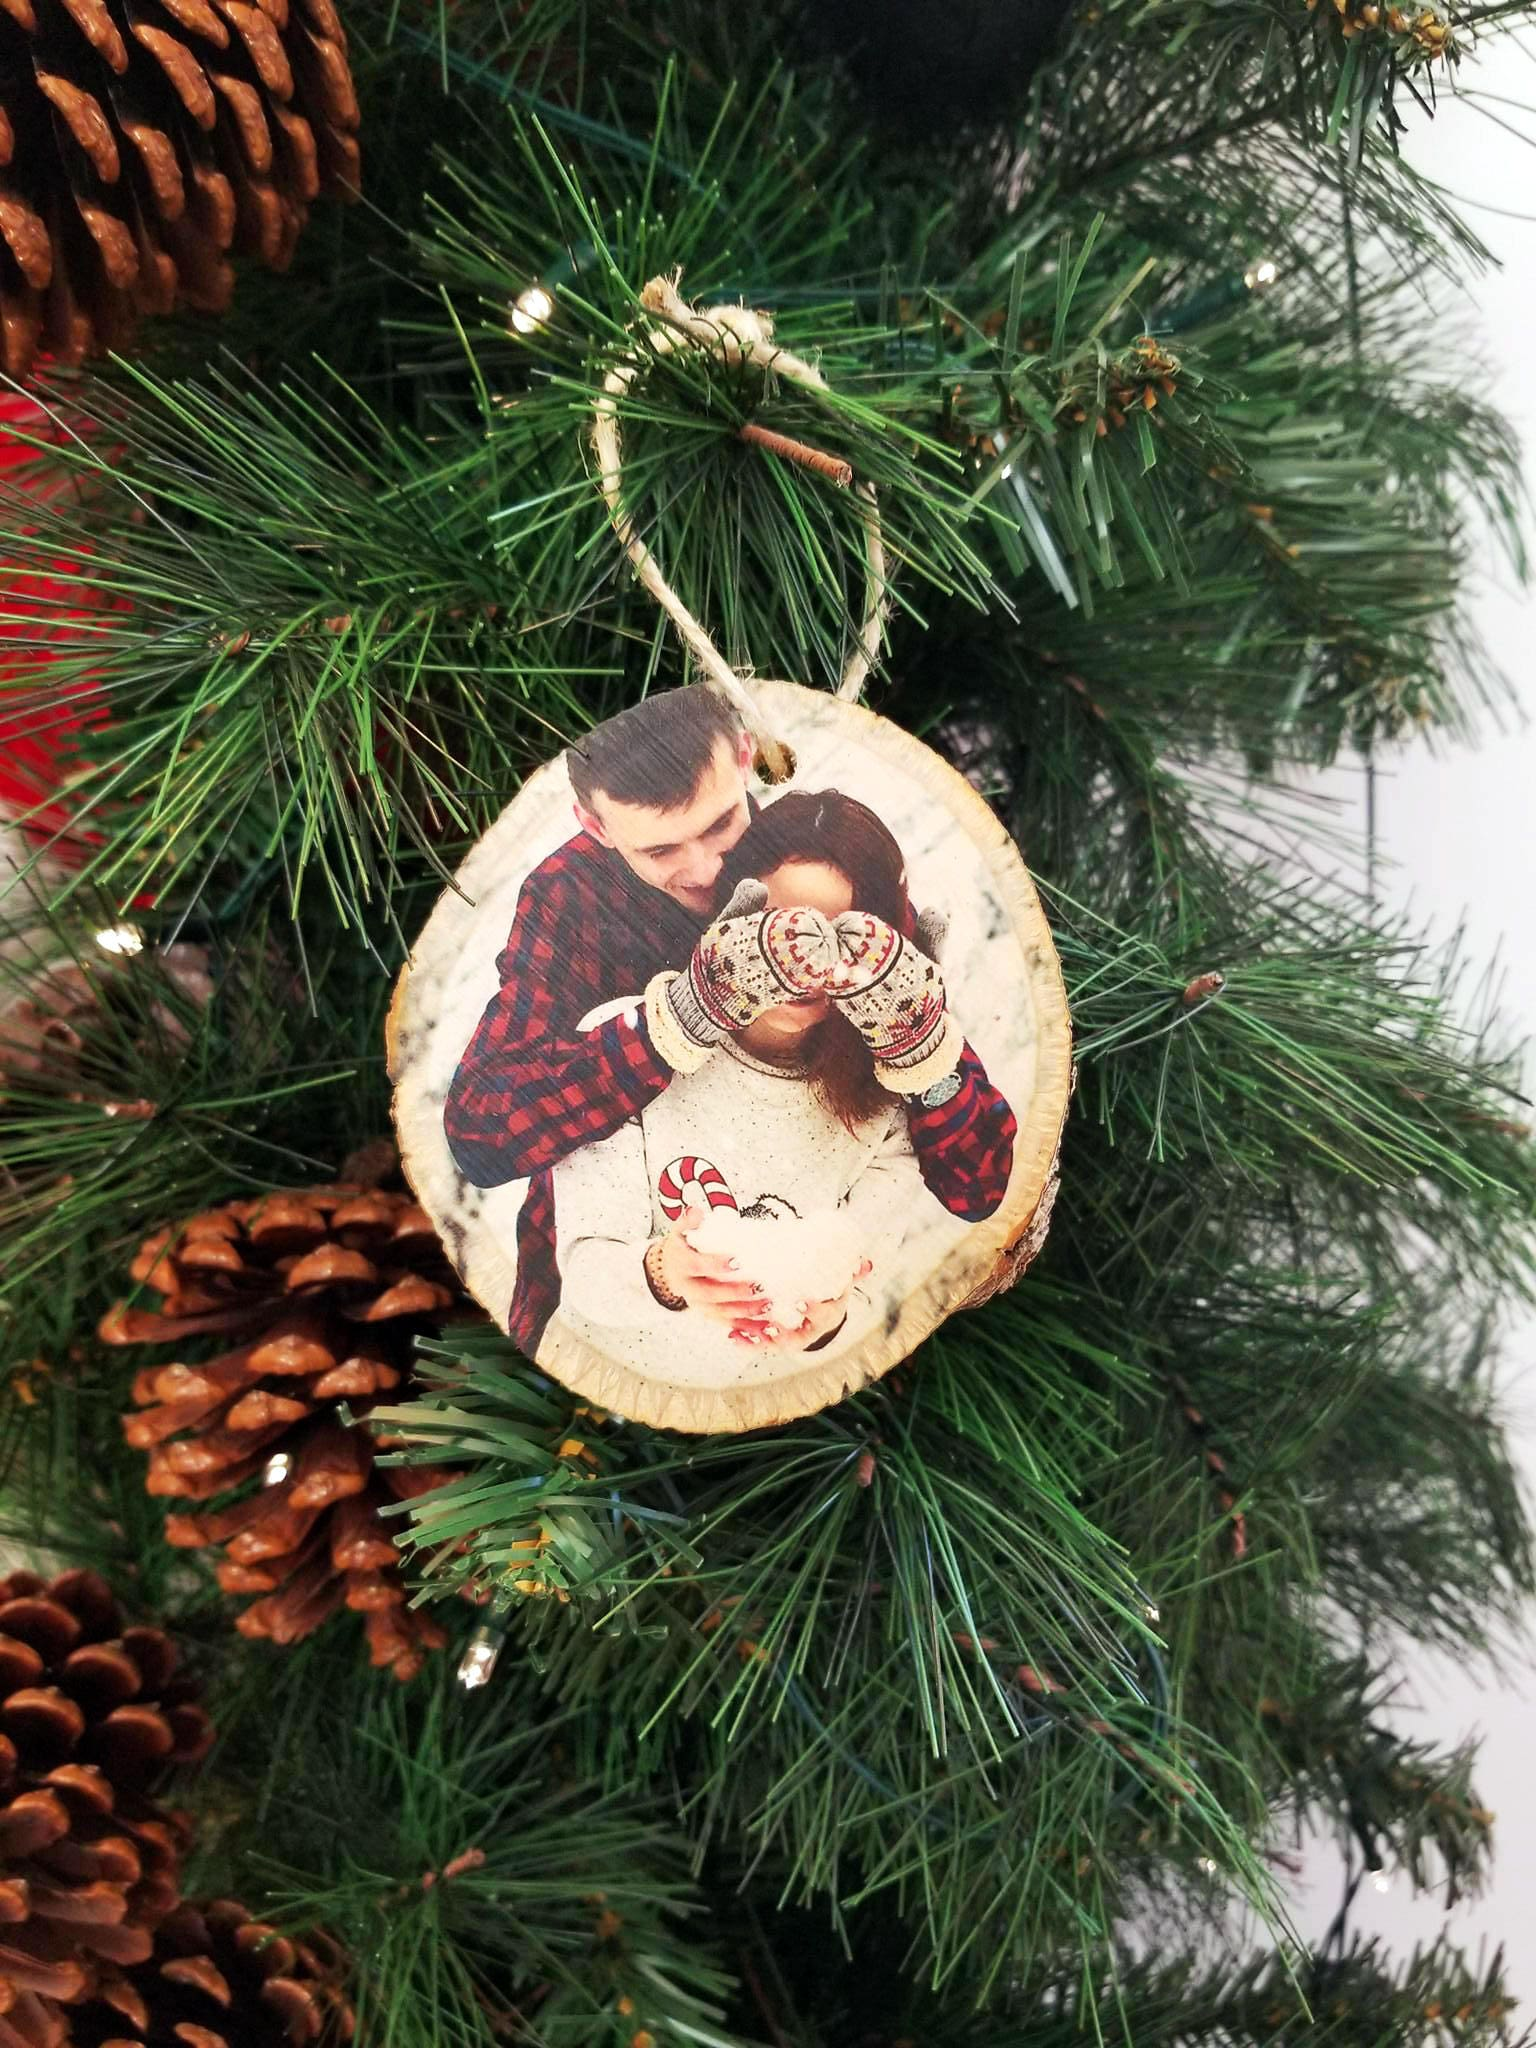 Engagement Ring In Christmas Ornament Part - 45: ?zoom